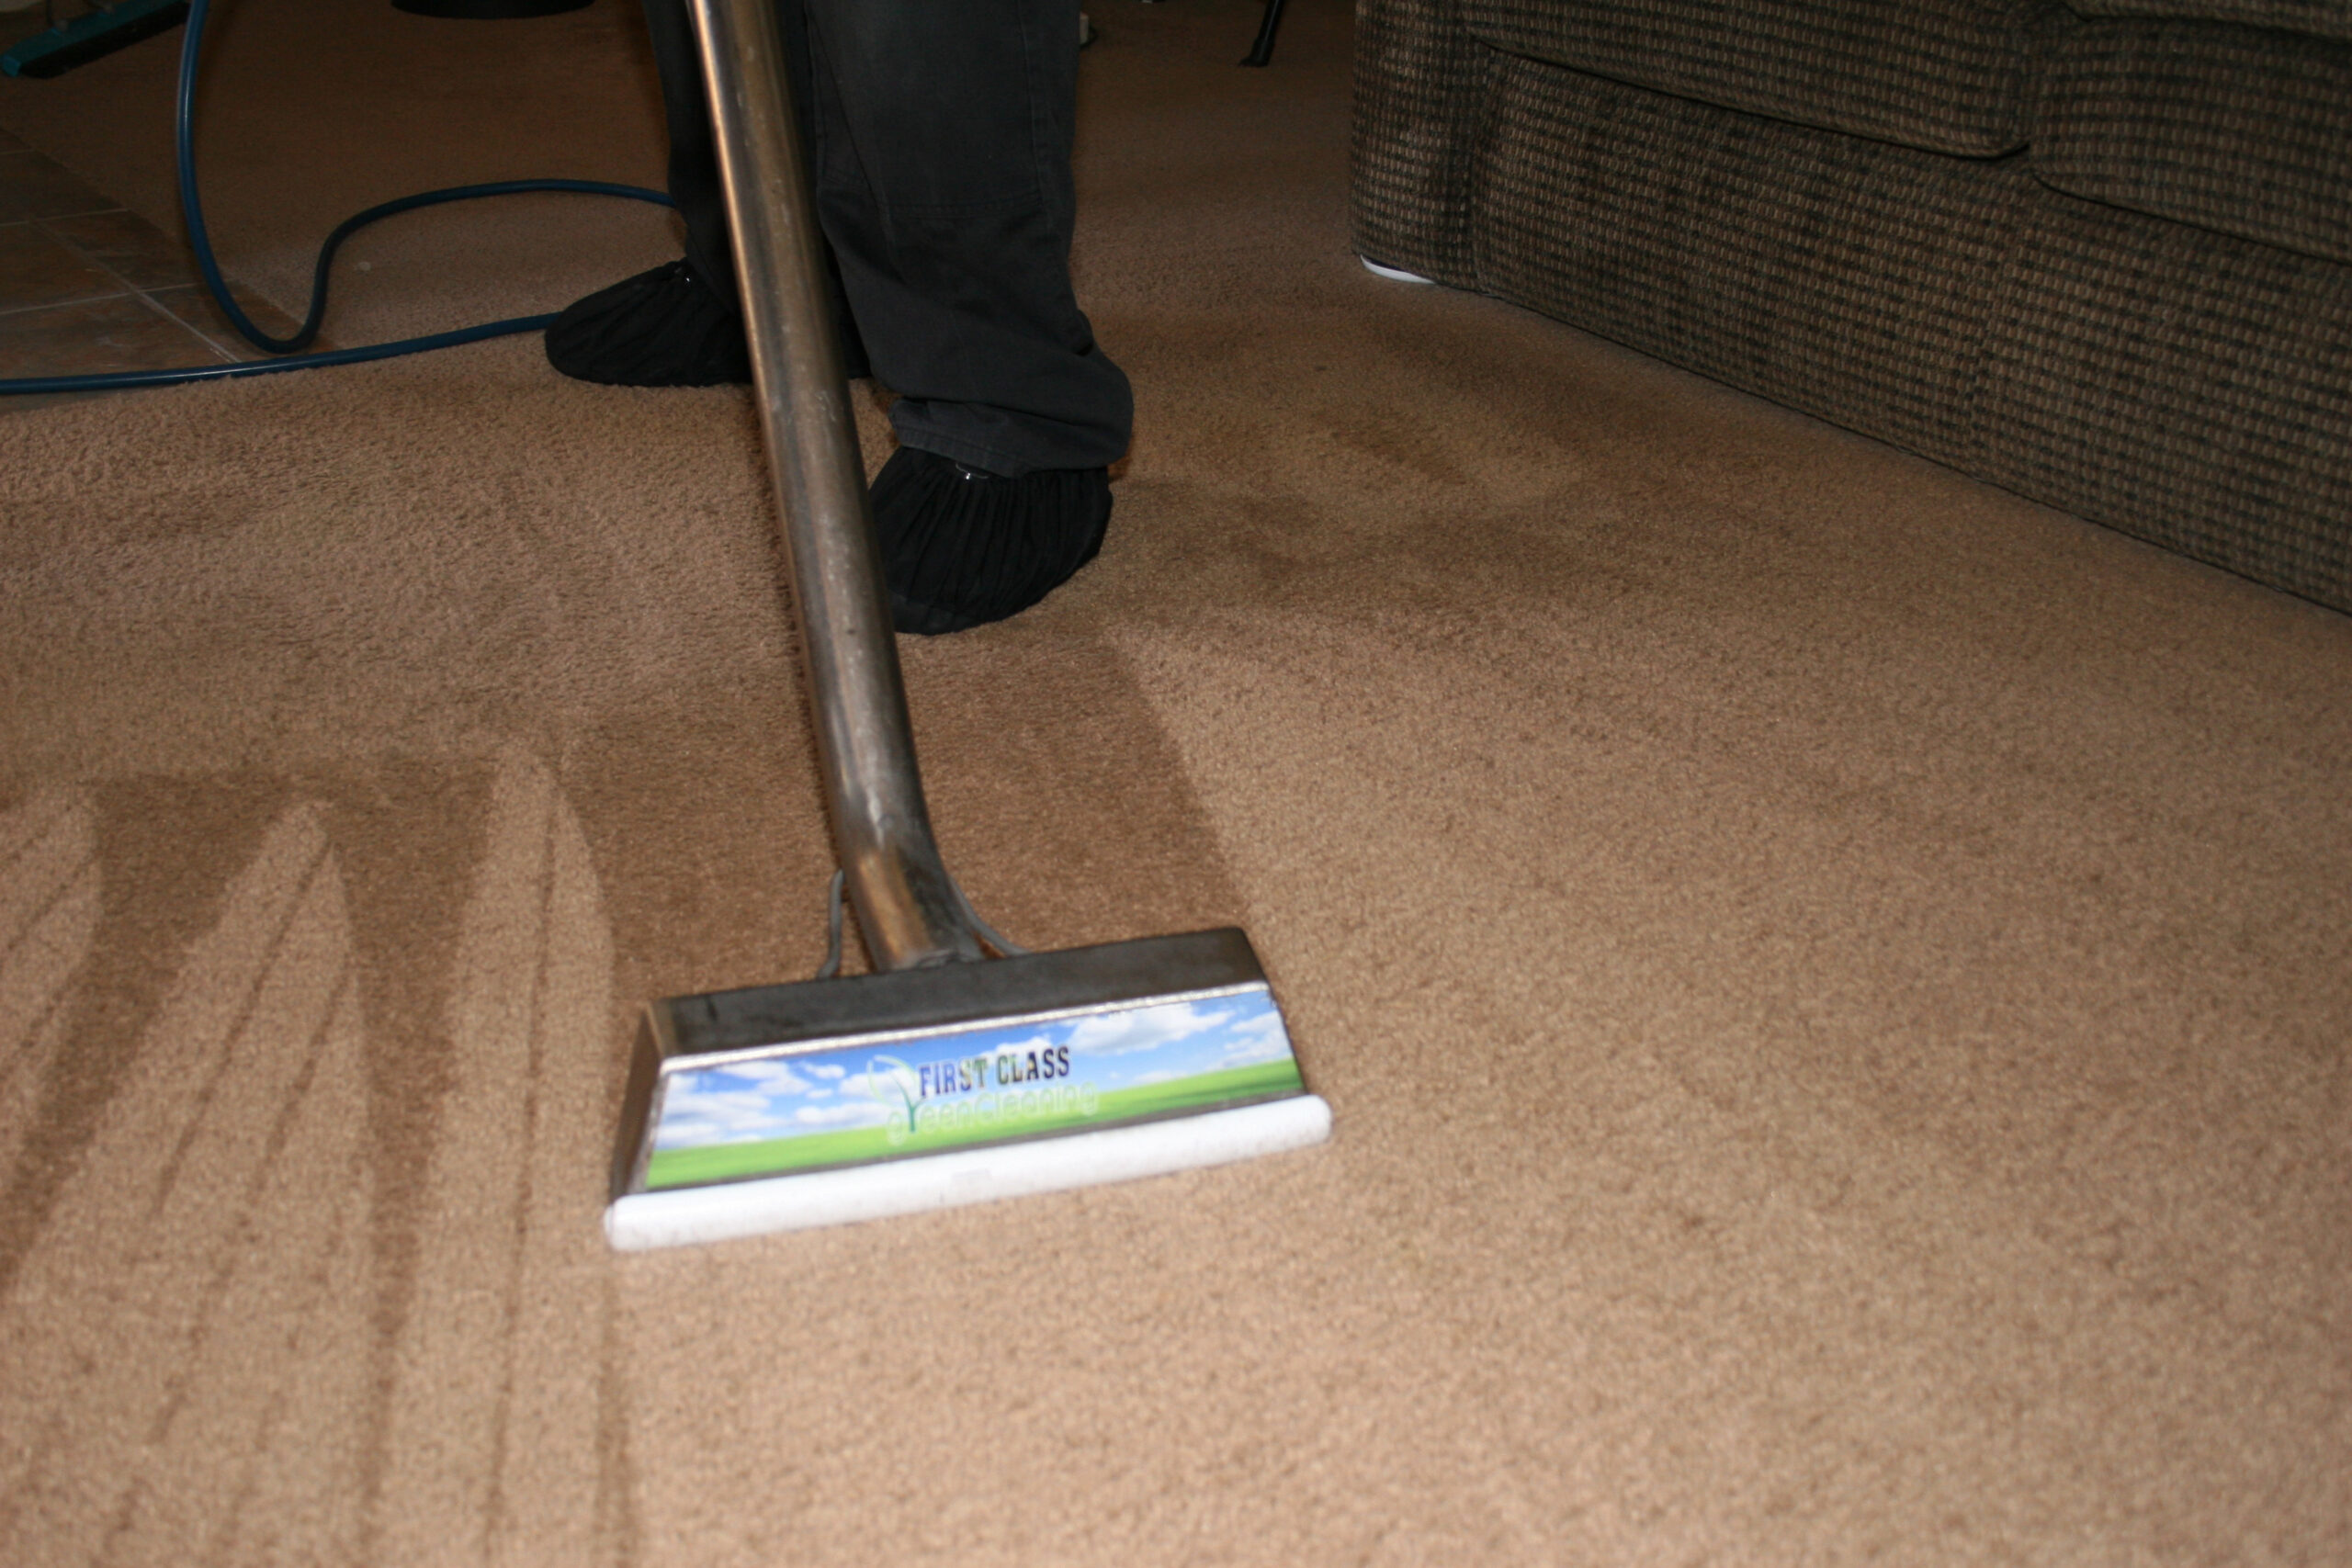 Residential and commercial interior cleaning in Phoenix by First Glass Green Cleaning showing carpet cleaning